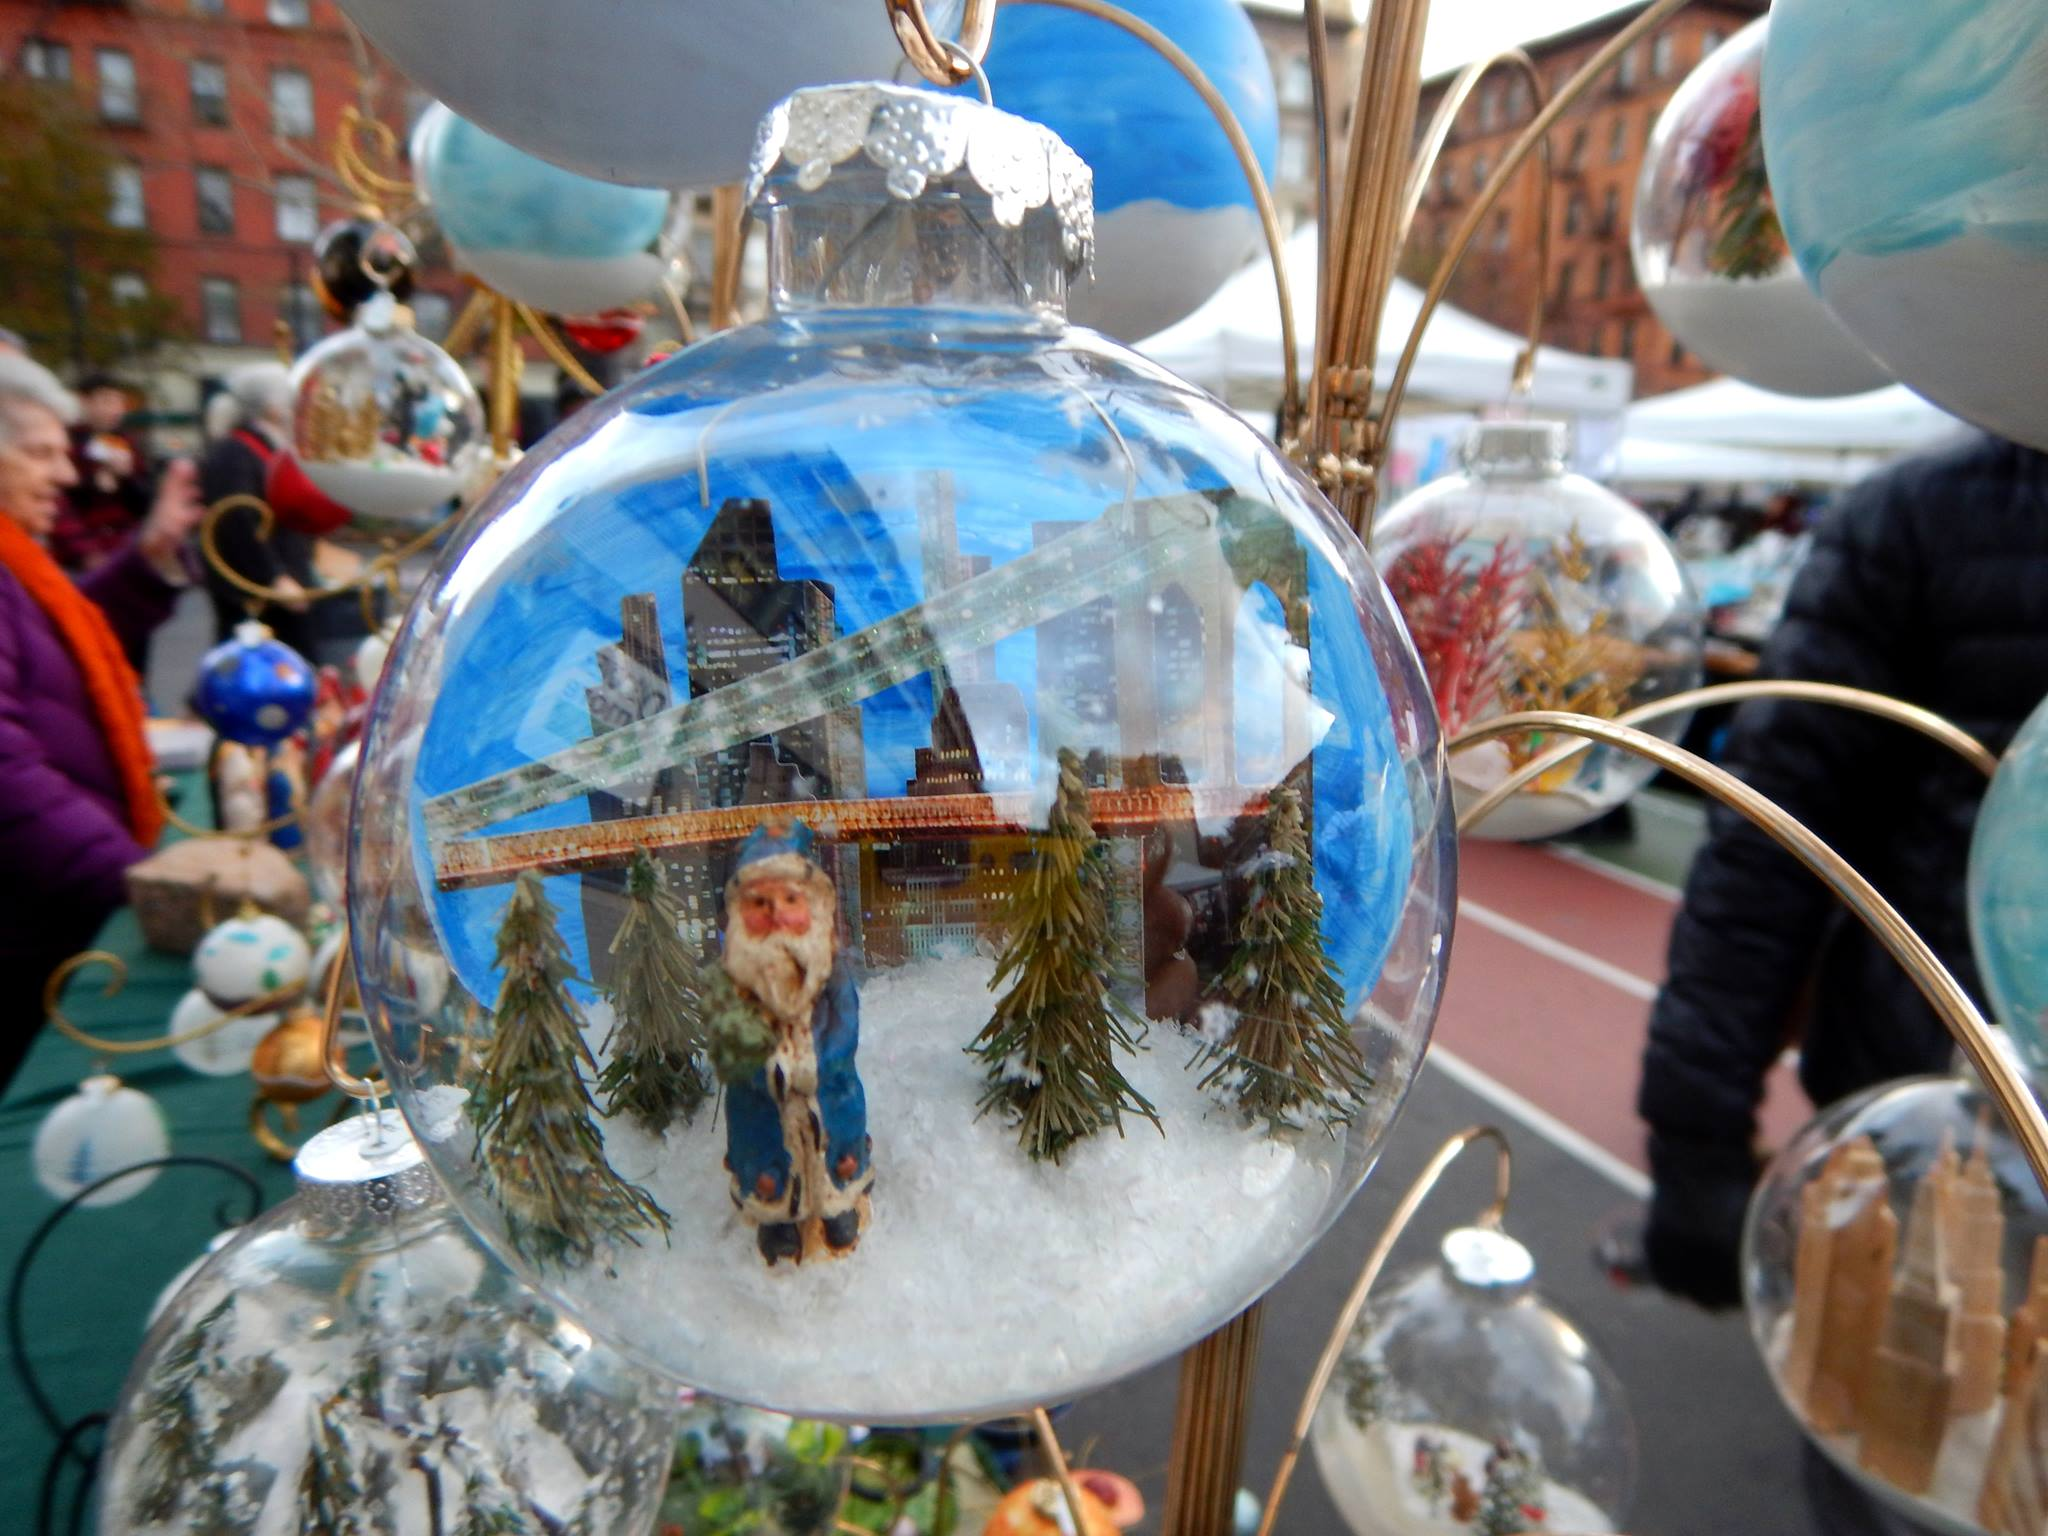 Christmas Markets Bronx, Ny 2020 The top NYC holiday markets and pop up shops of 2019 | 6sqft